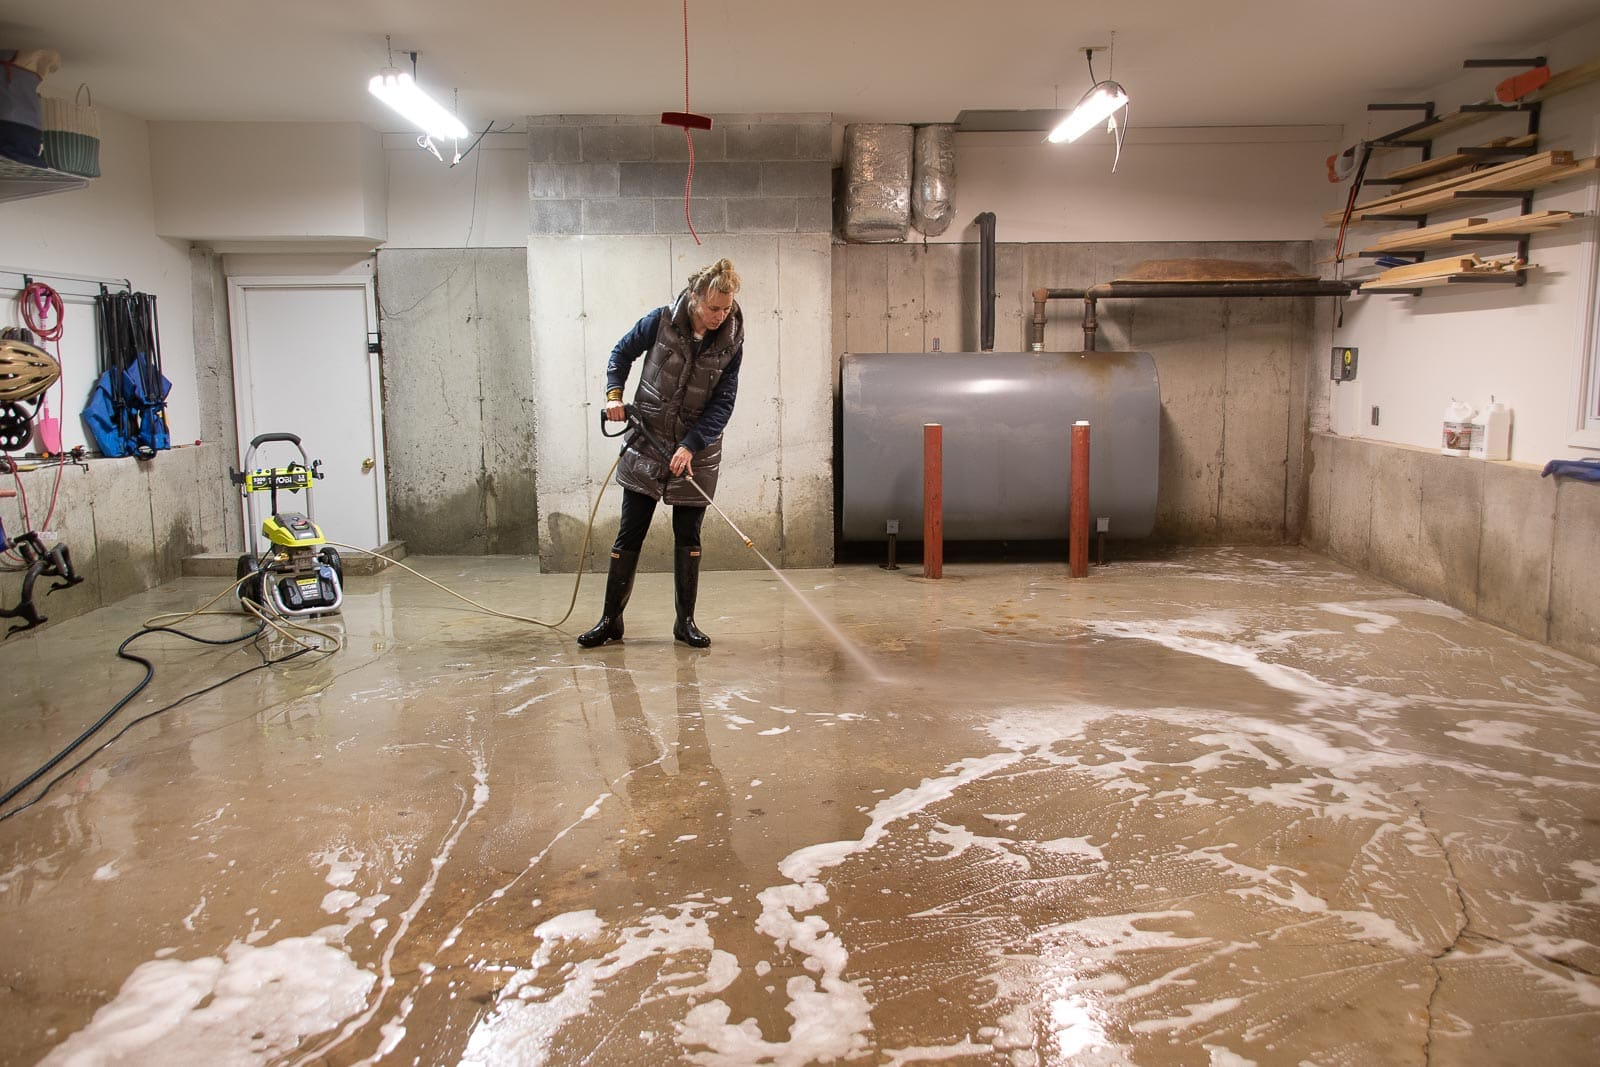 power washing and degreasing the garage